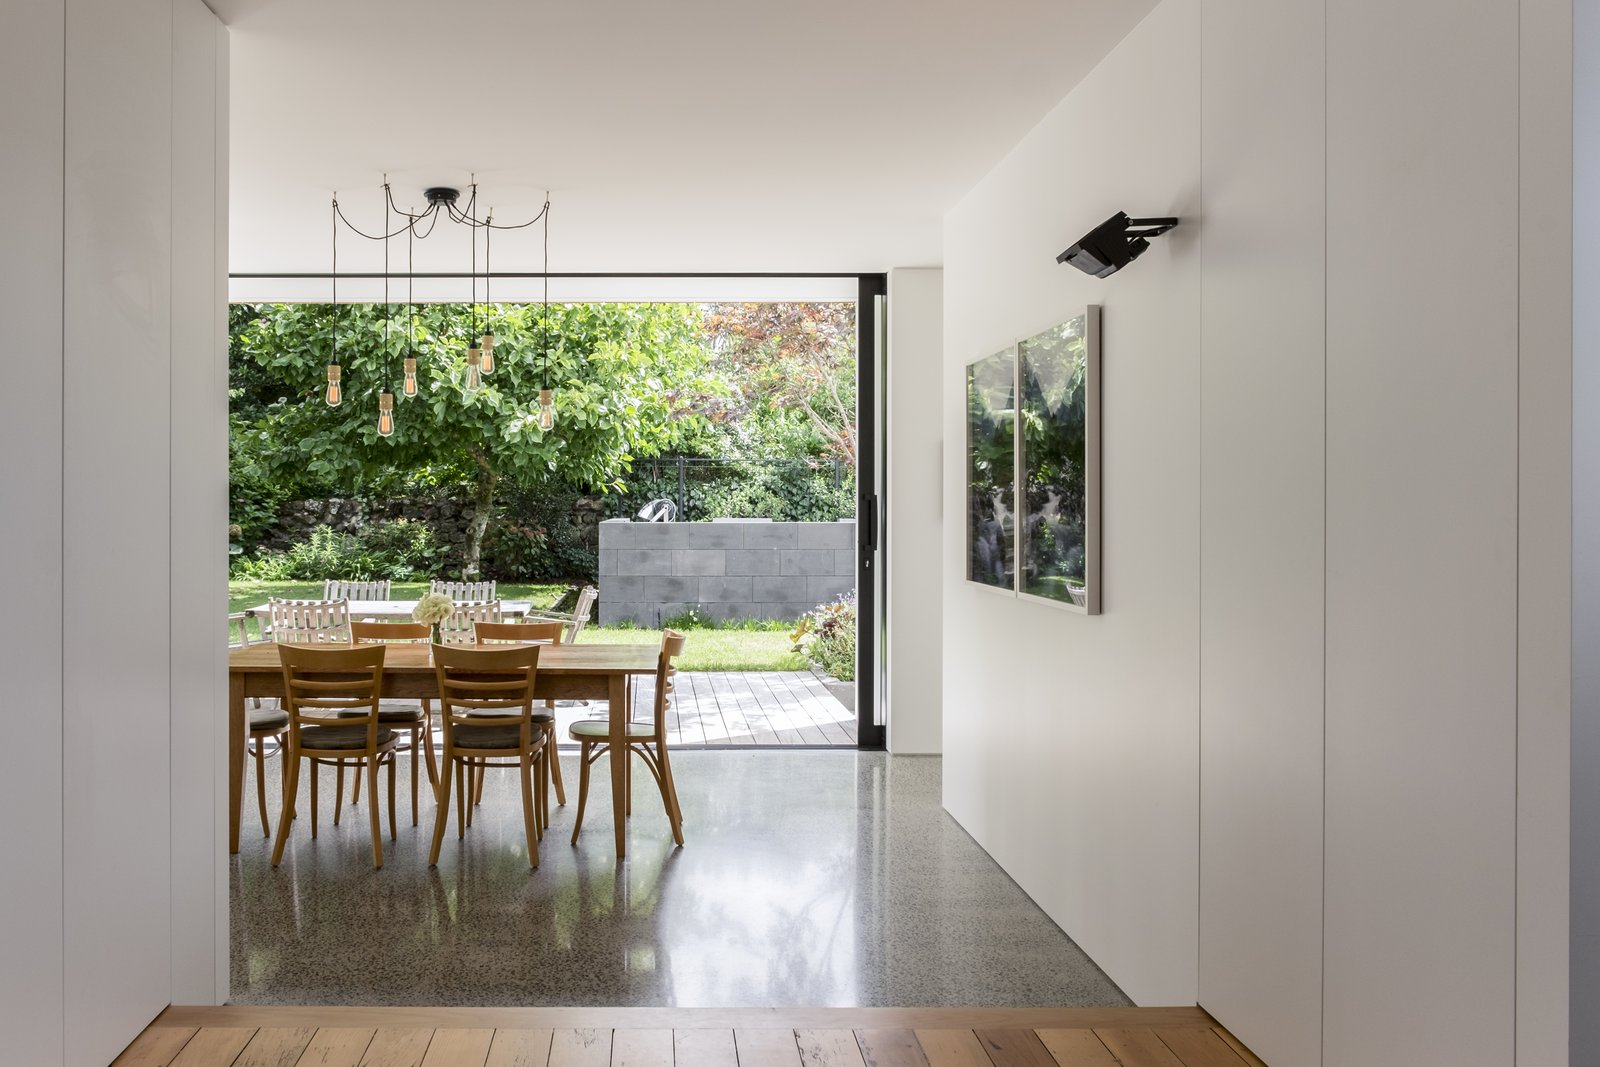 Kauri flooring to the raised living area delineates the living space, while the kitchen and dining spaces are defined by a diamond-ground concrete floor, lowered to be level with the timber decking to the adjacent courtyards.